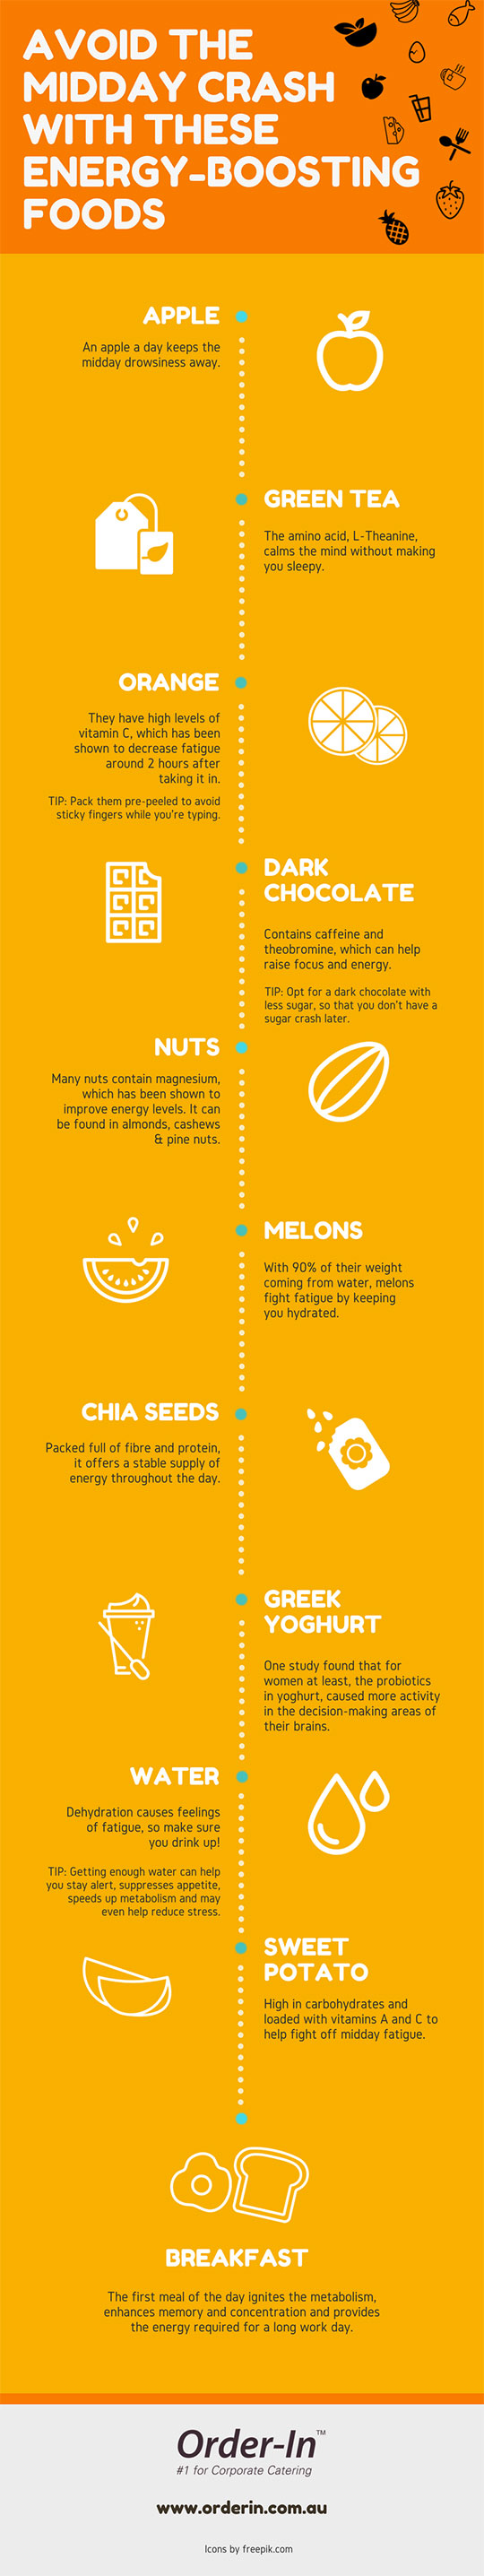 Avoid the midday crash with these energy-boosting foods infographic